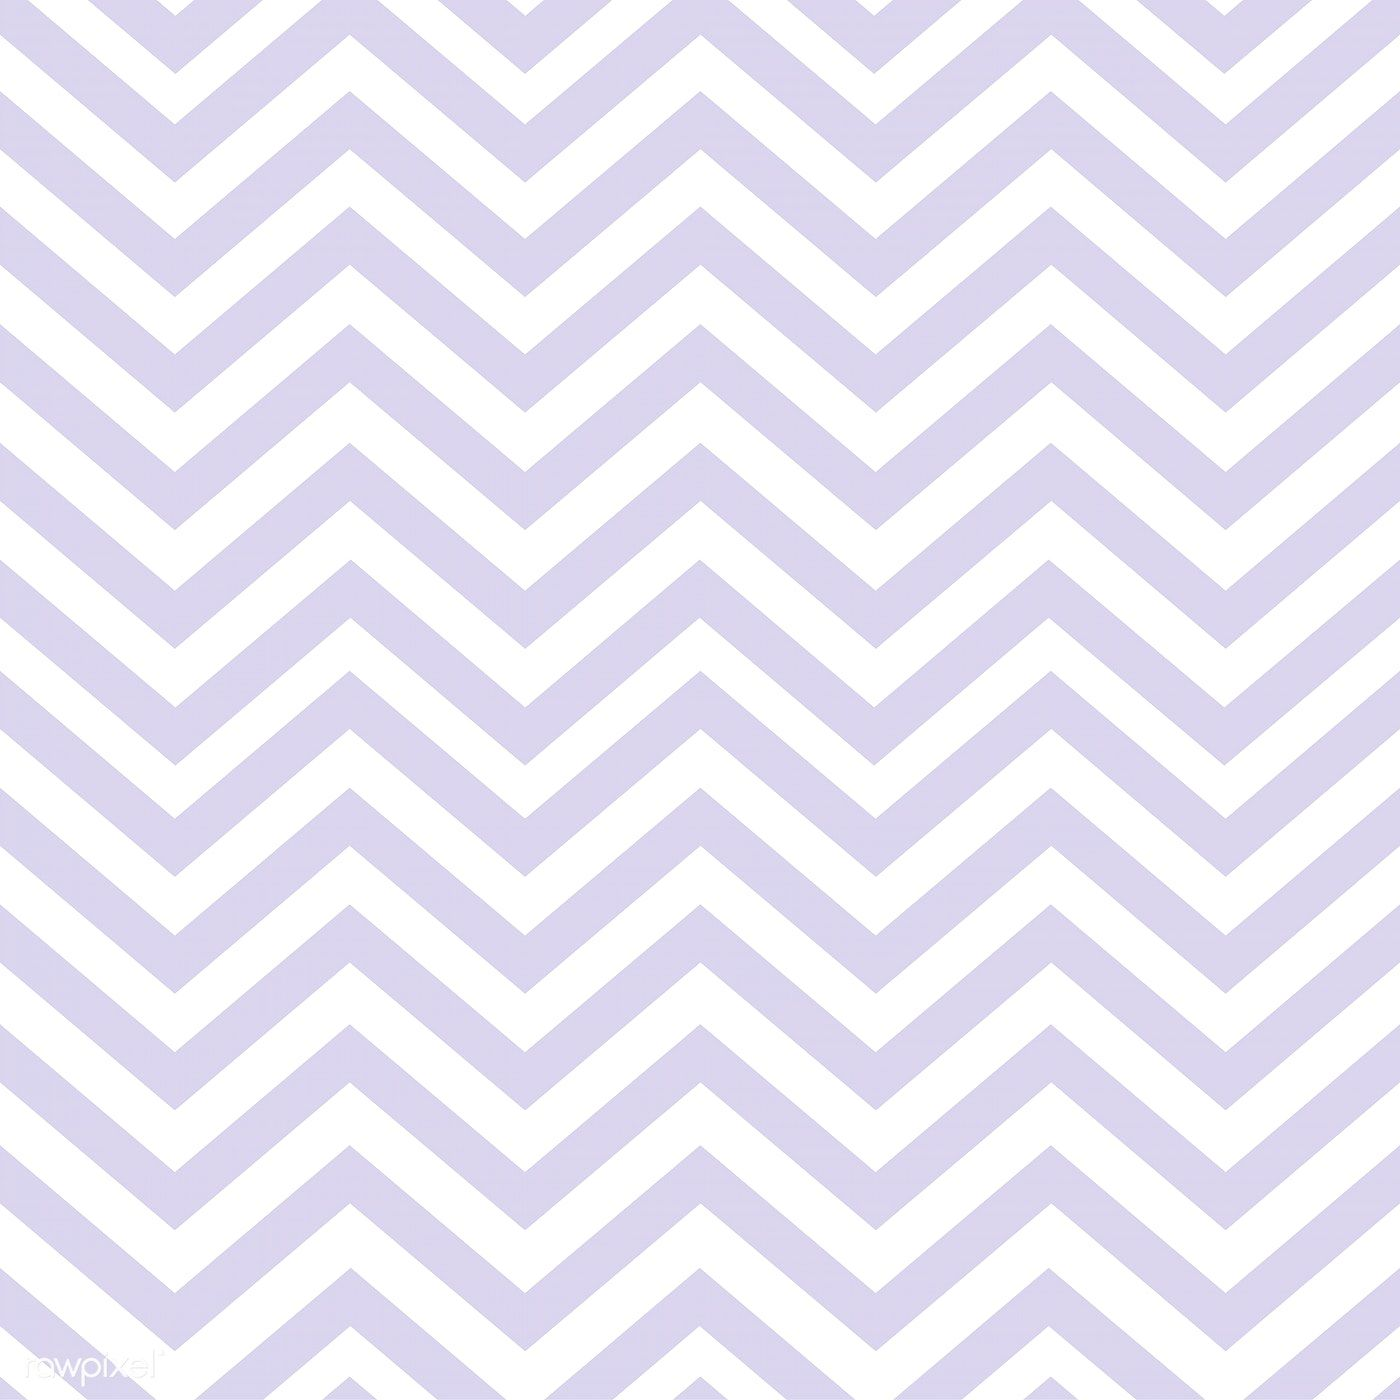 Pastel Purple Seamless Zigzag Pattern Vector Free Image By Rawpixel Com Filmful Pastel Purple Pastel Pattern Zig Zag Pattern